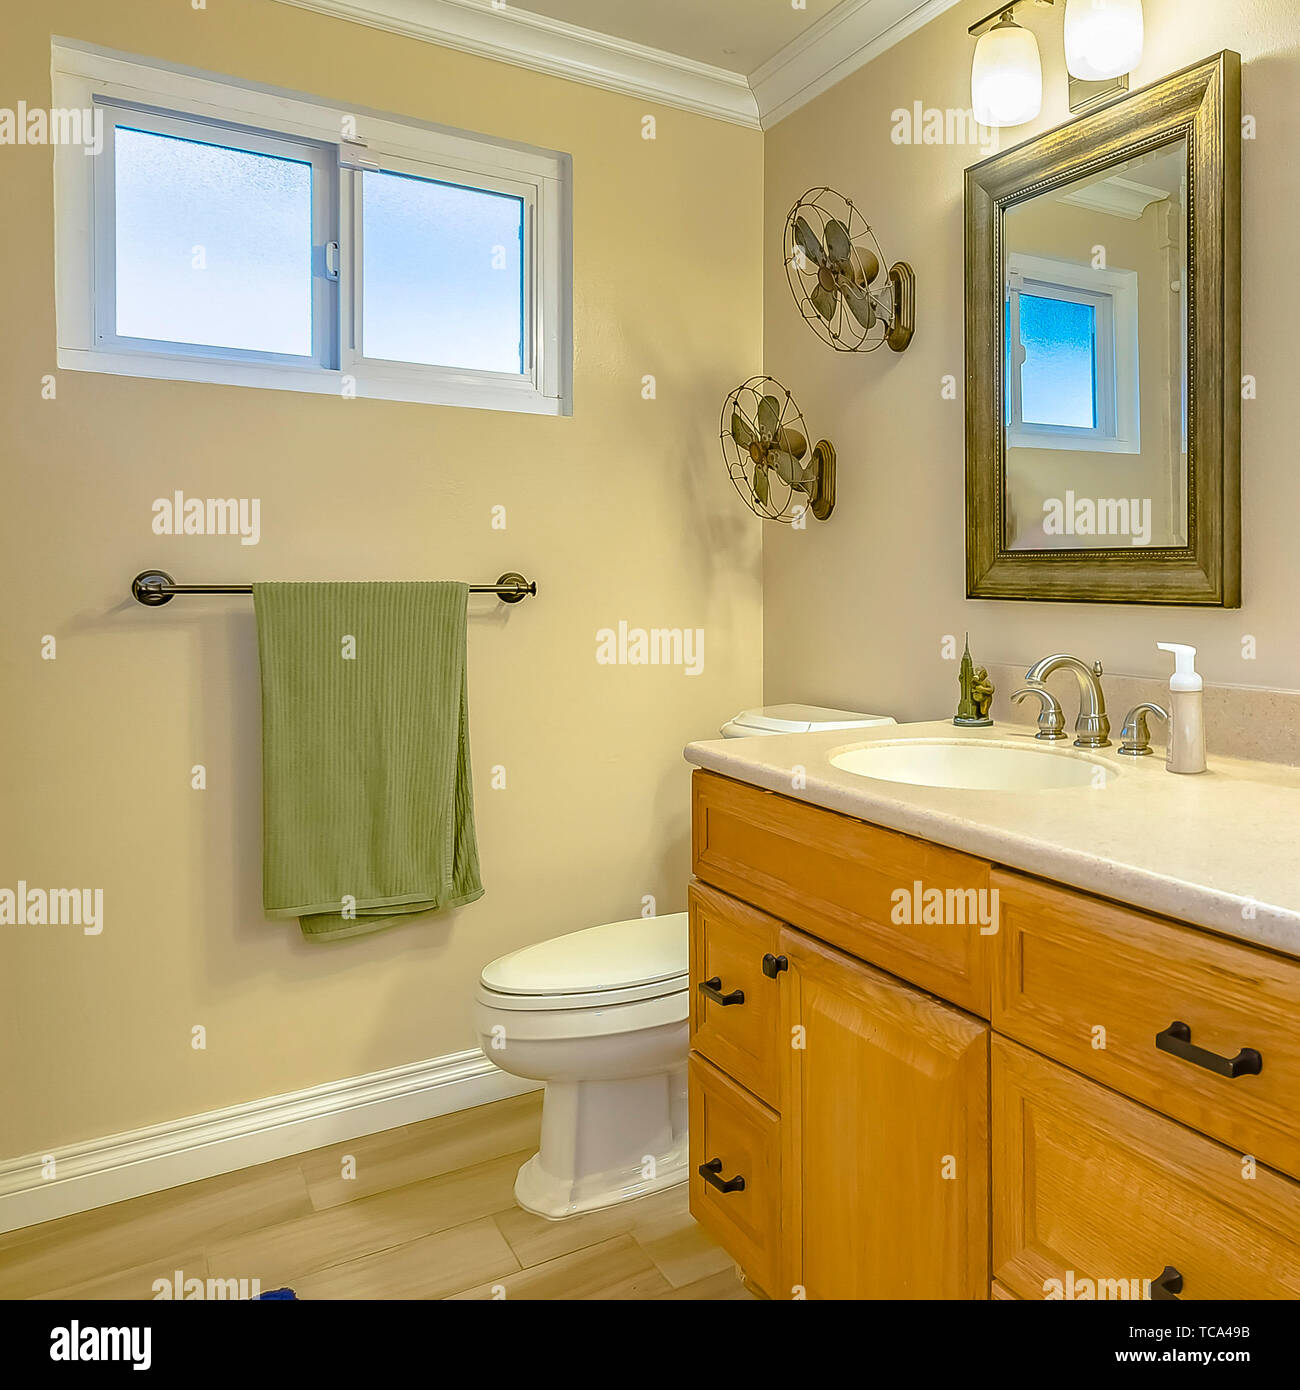 Square Double Vanity With Wooden Cabinets Inside A Bathroom With Small Window Stock Photo Alamy